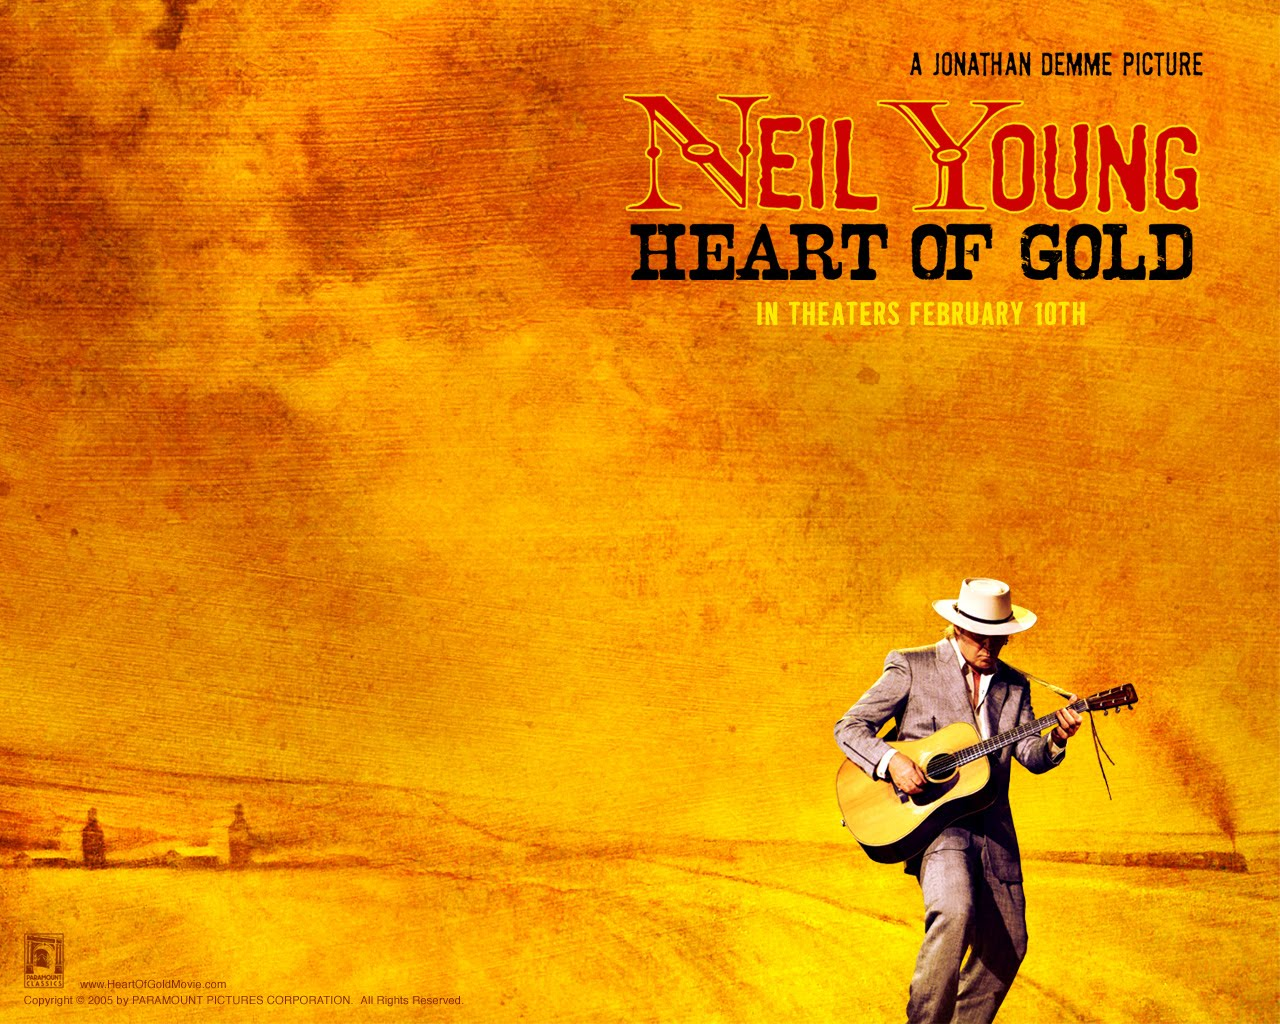 下旋月之语: 5. Heart Of Gold - Neil Young